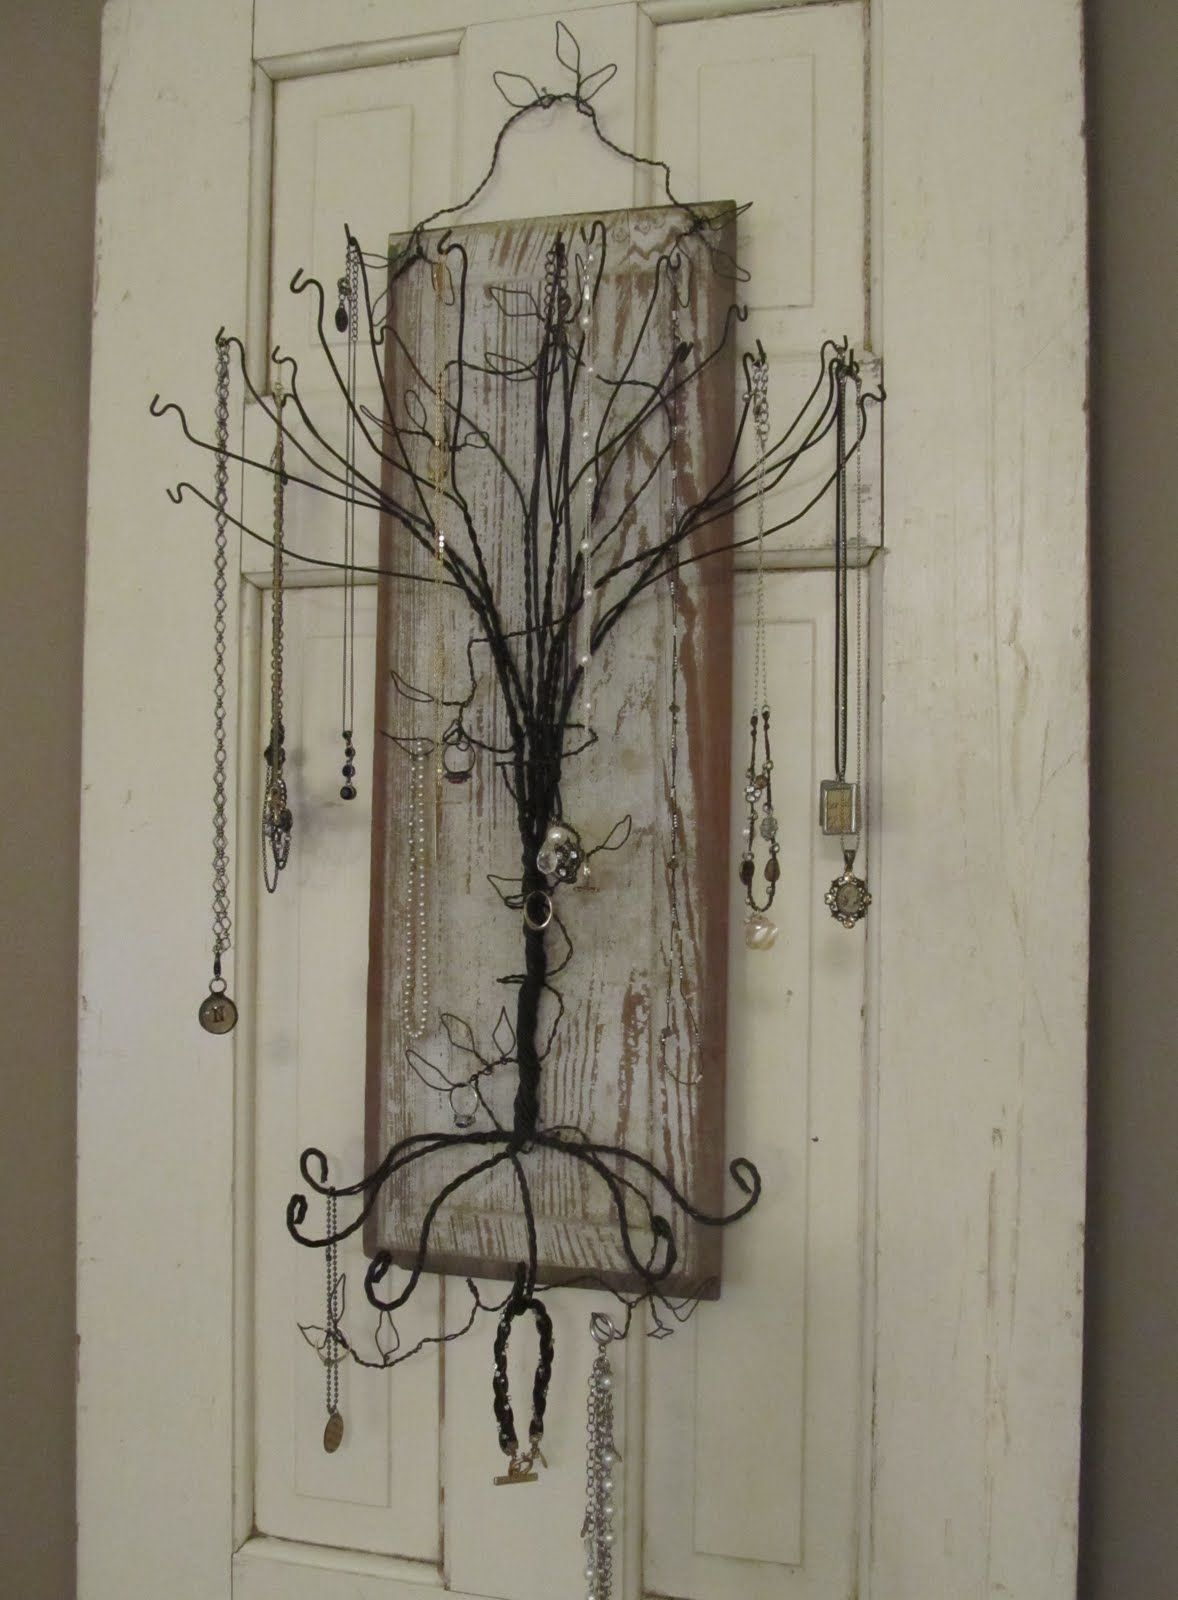 Coat Hanger Jewelry Tree Hint hint i want i want I know where I